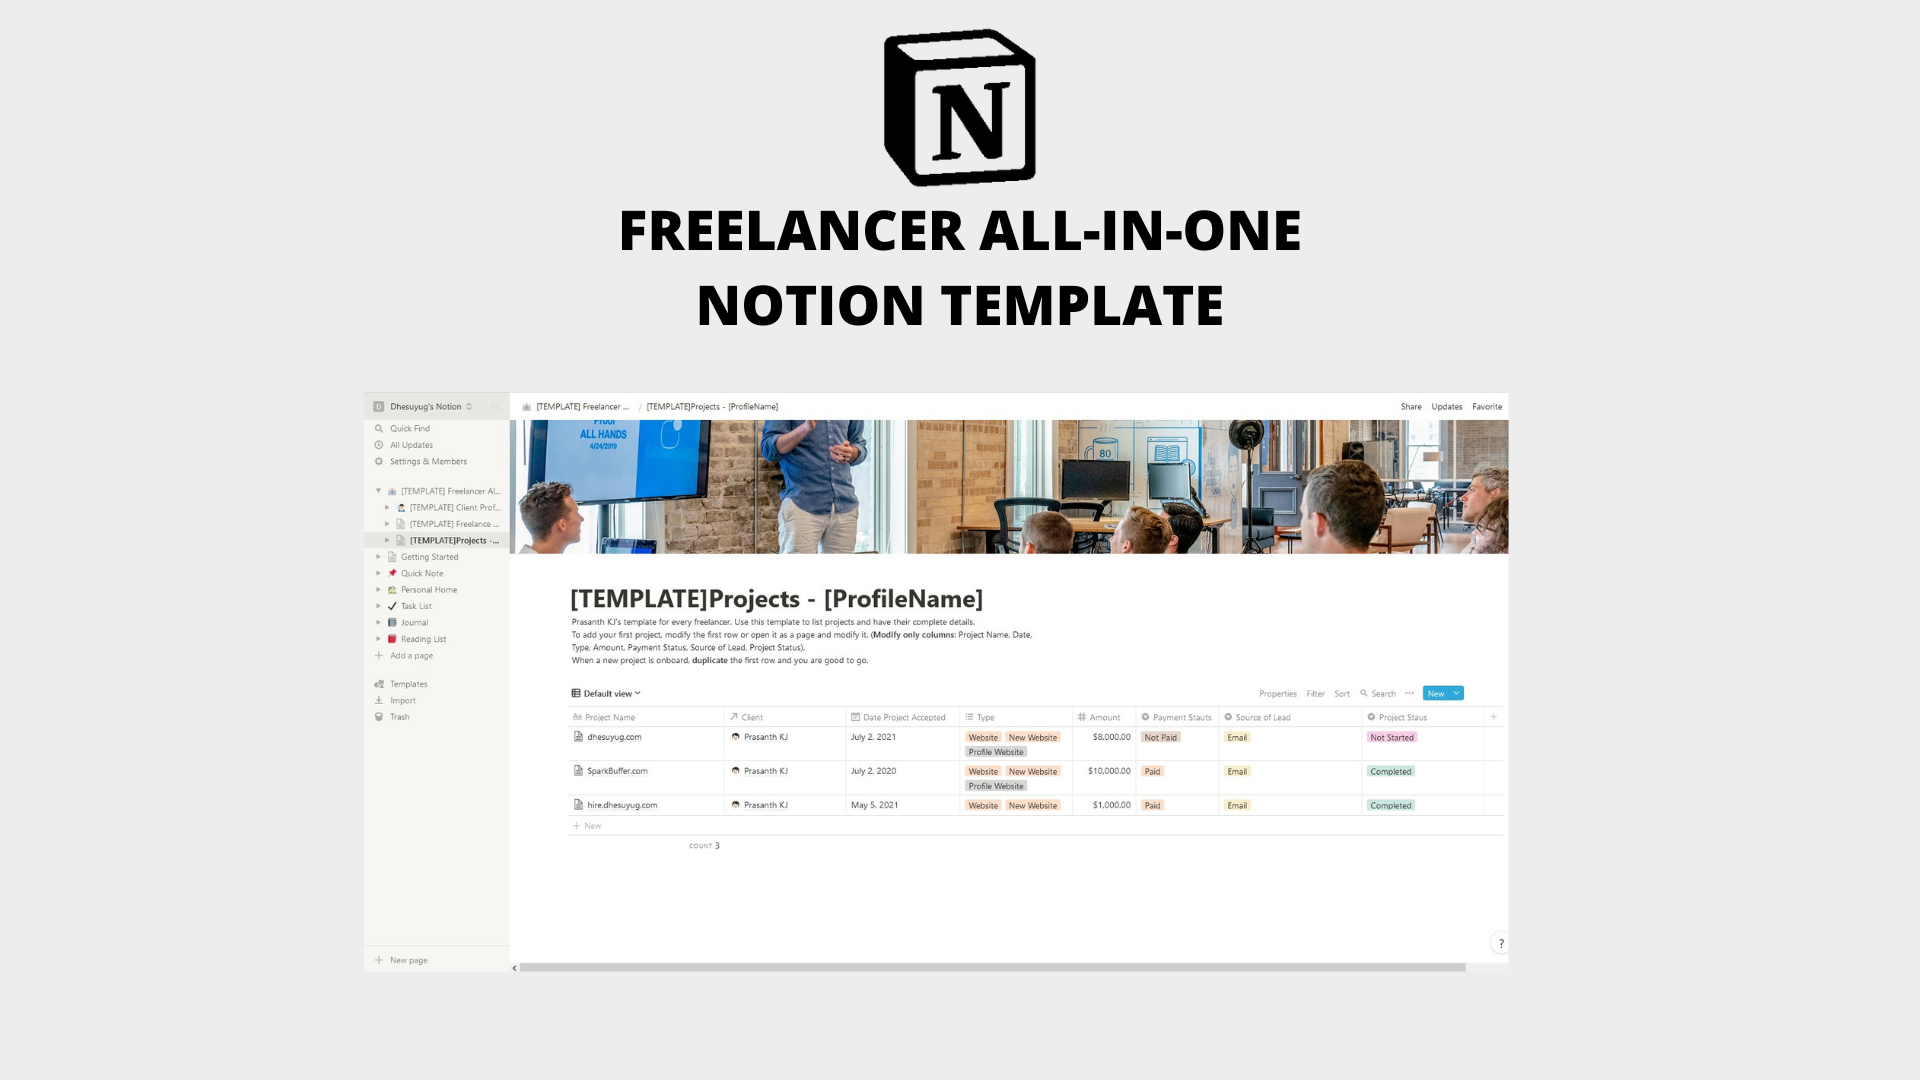 Freelancer All-in-One